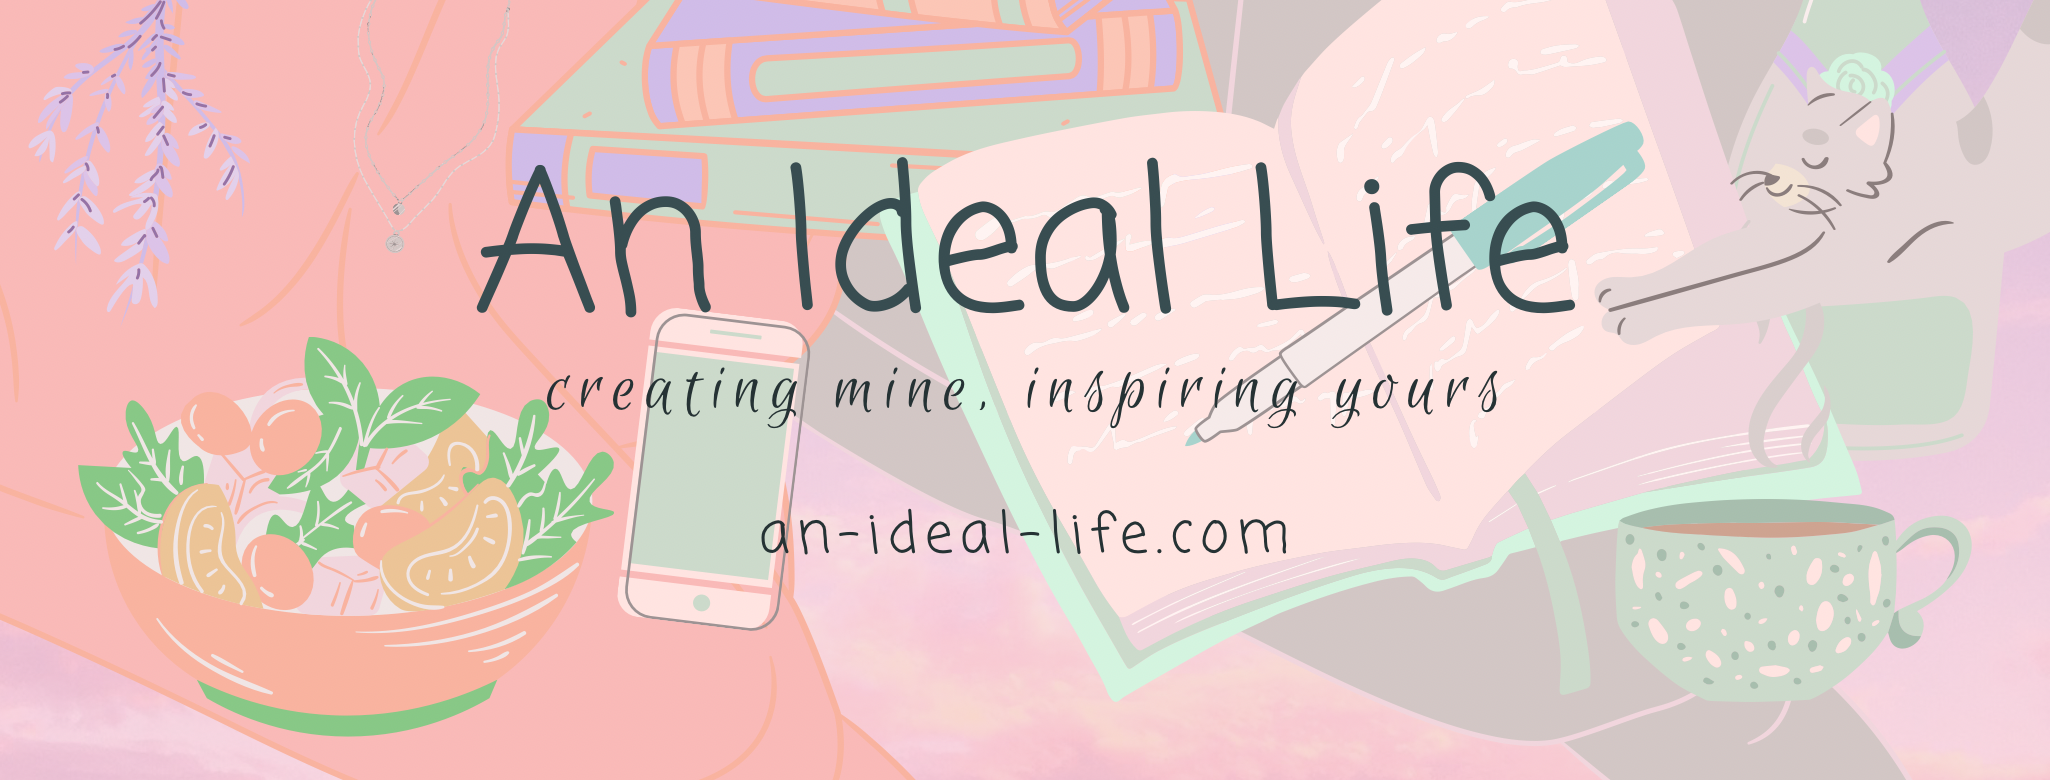 Archive An Ideal Life banner